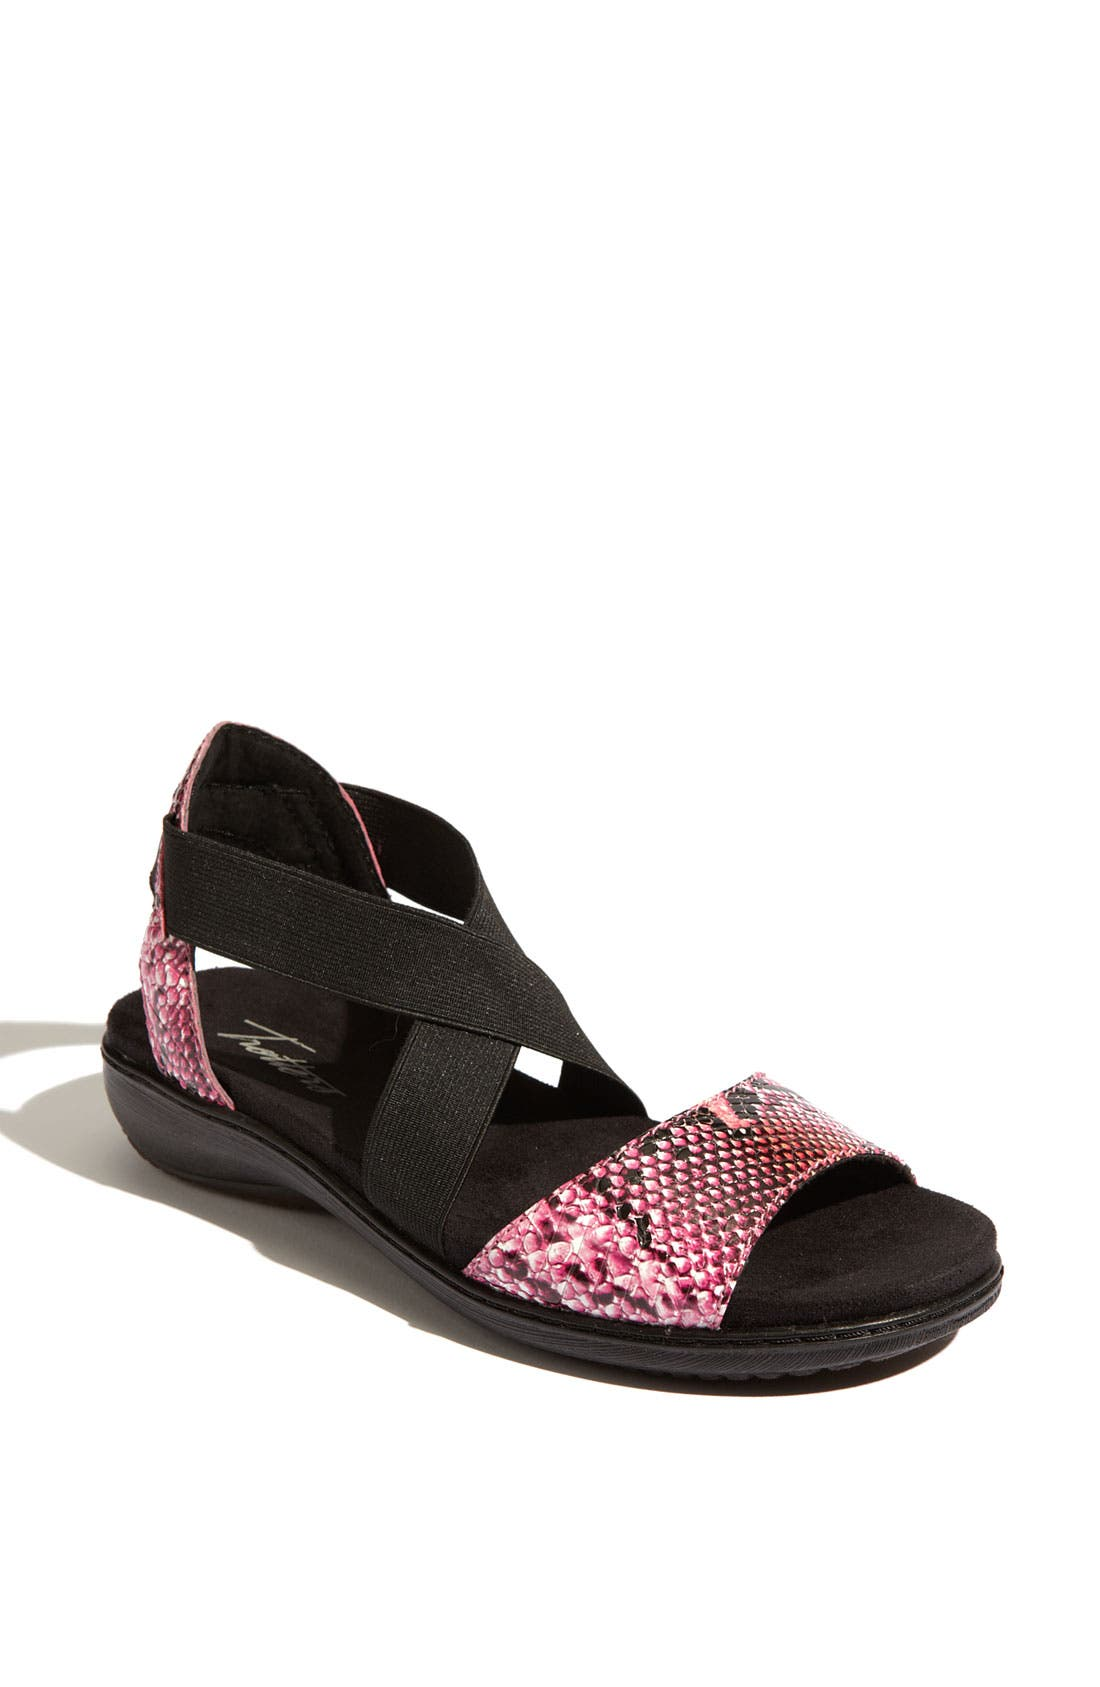 Alternate Image 1 Selected - Trotters 'Kristen' Sandal